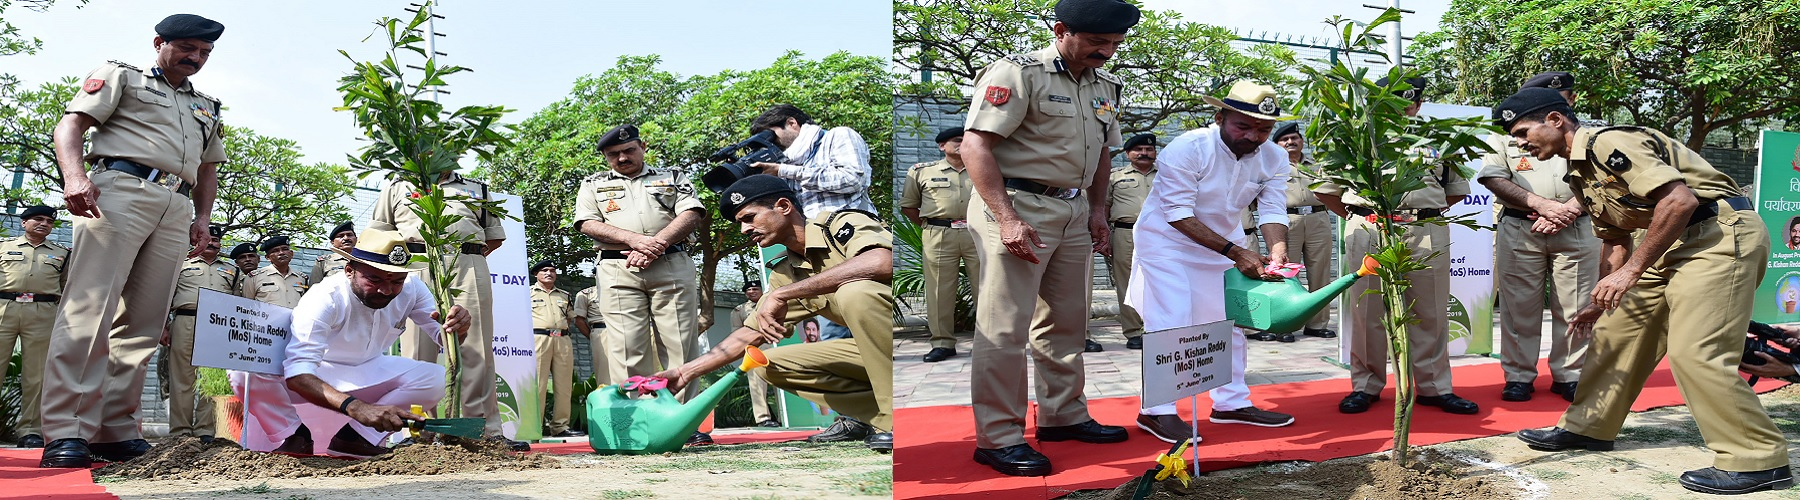 Union  Minister of State for Home Affairs Shri G. Kishan Reddy planting a sapling at the BSF Mess premises on the occasion of World Environment Day on June 05,2019 in New Delhi. Senior Officers of BSF are also seen.